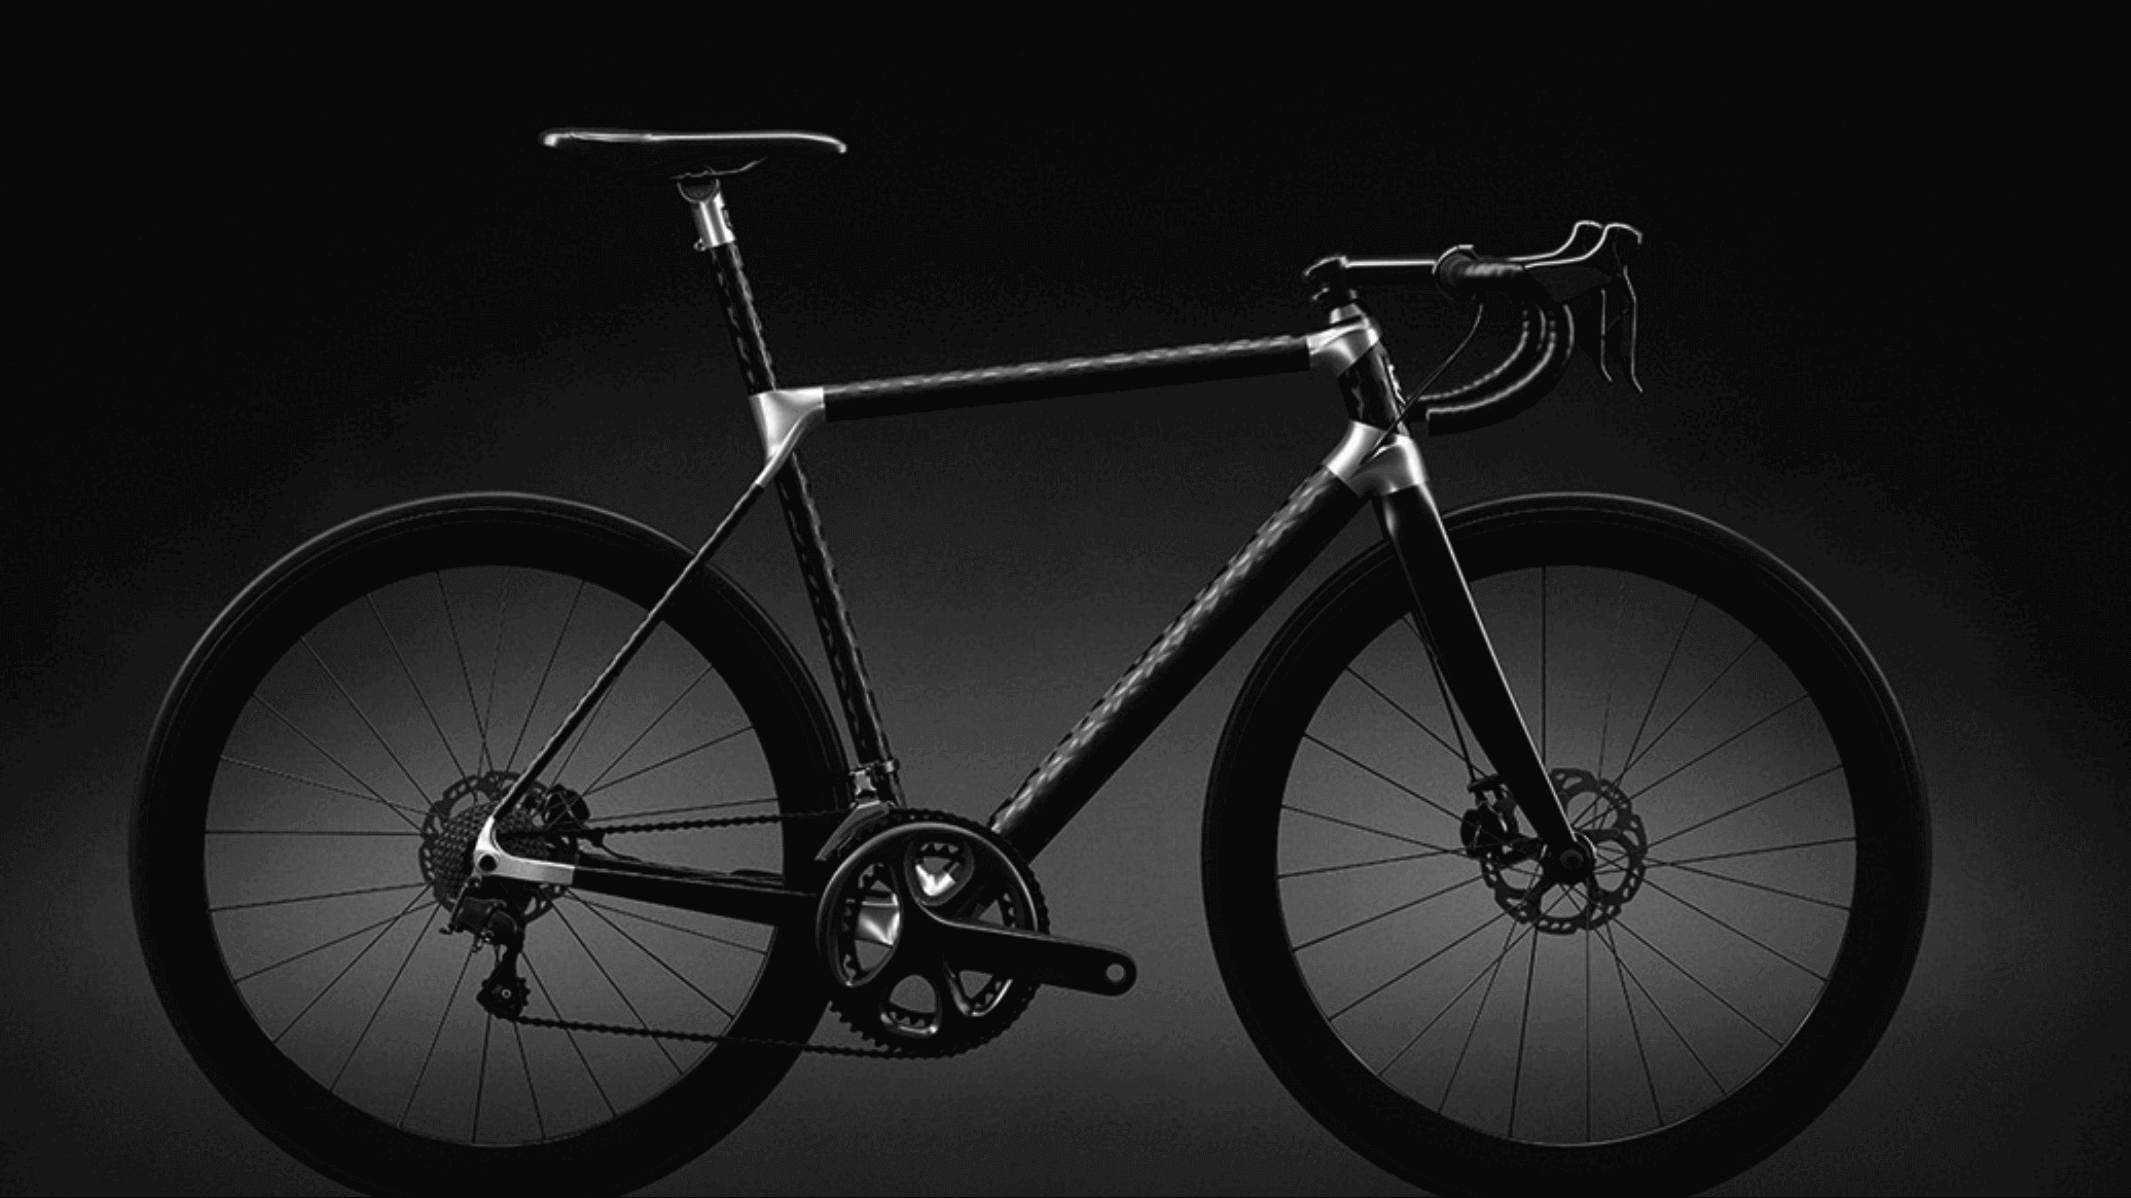 Bastion Launch 3D Printed Road Bike | All3DP